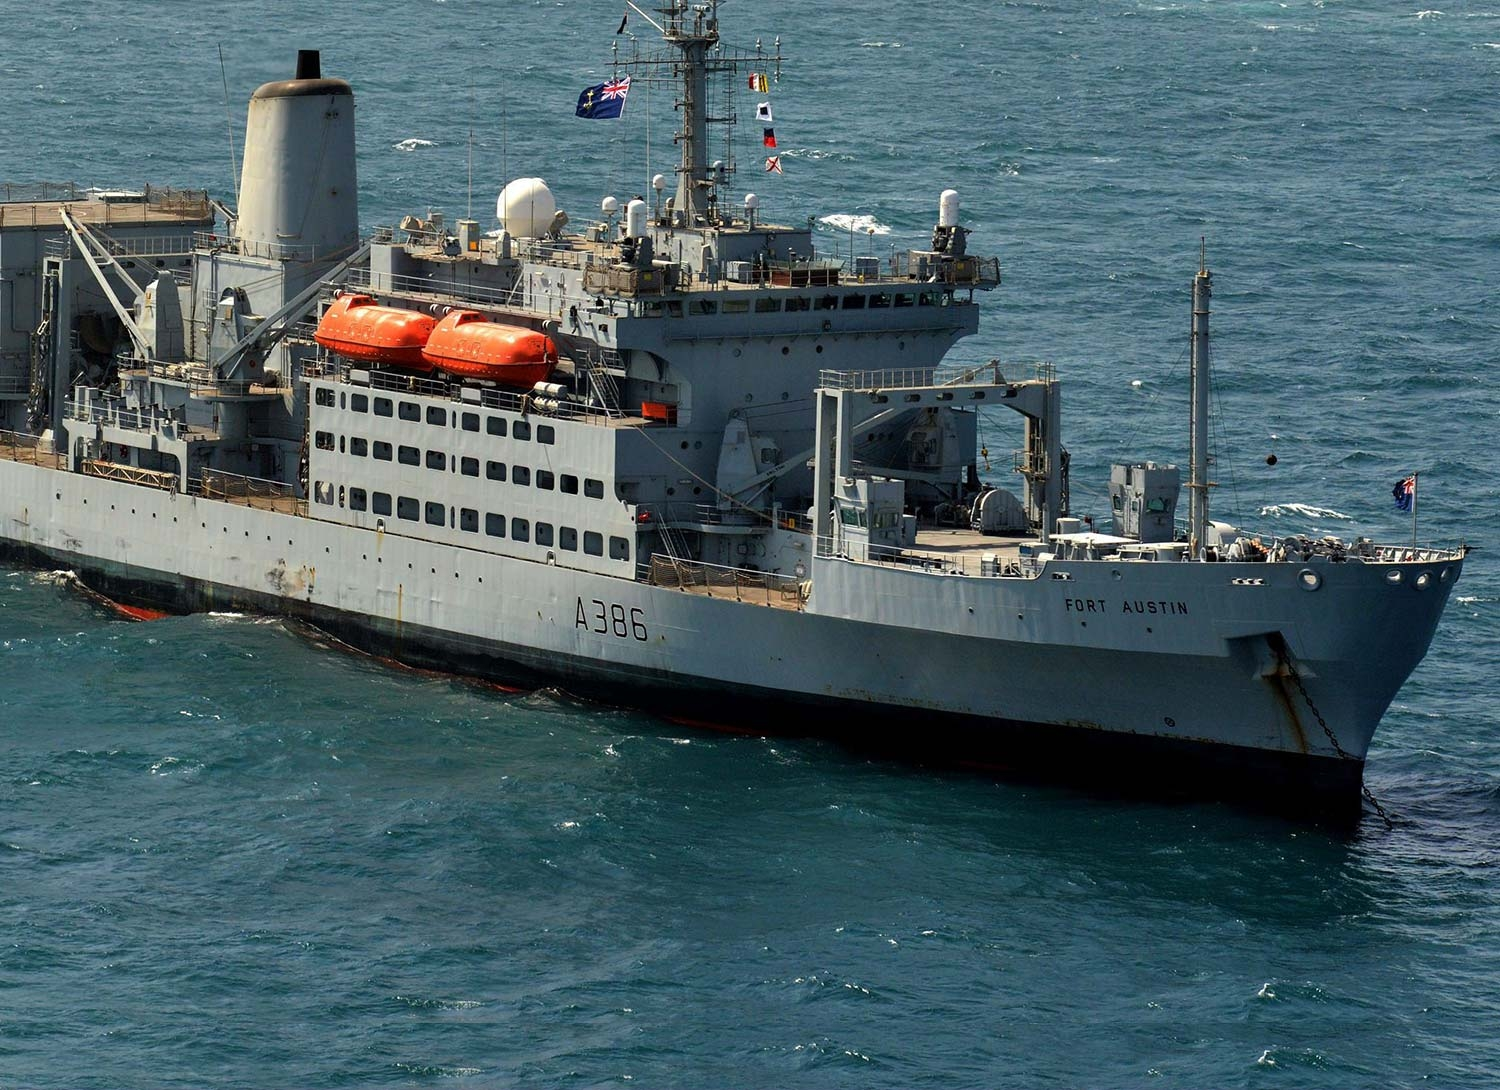 A Royal Navy solid support ship